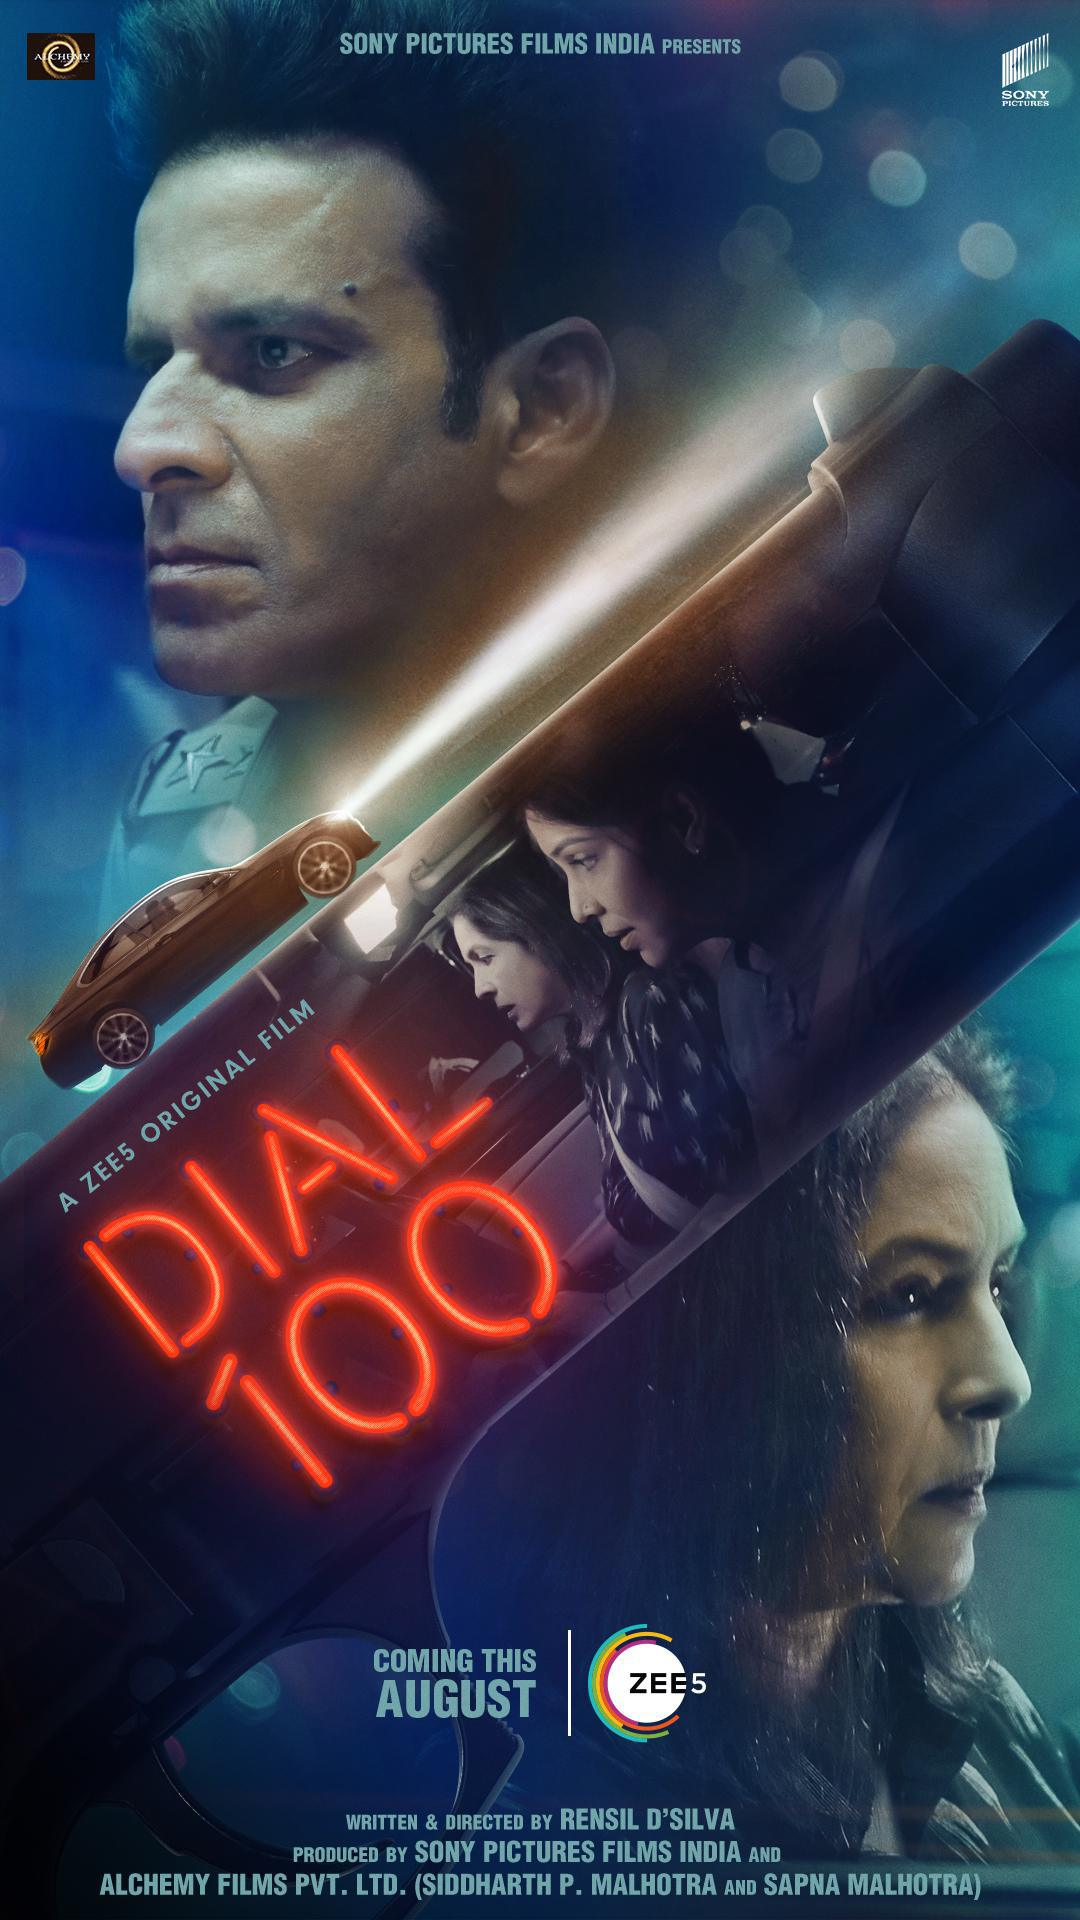 ZEE5 GLOBAL RELEASES TRAILER OF NEXT SUSPENSE THRILLER FILM, DIAL 100, PRODUCED BY SONY PICTURES FILMS INDIA & ALCHEMY FILMS